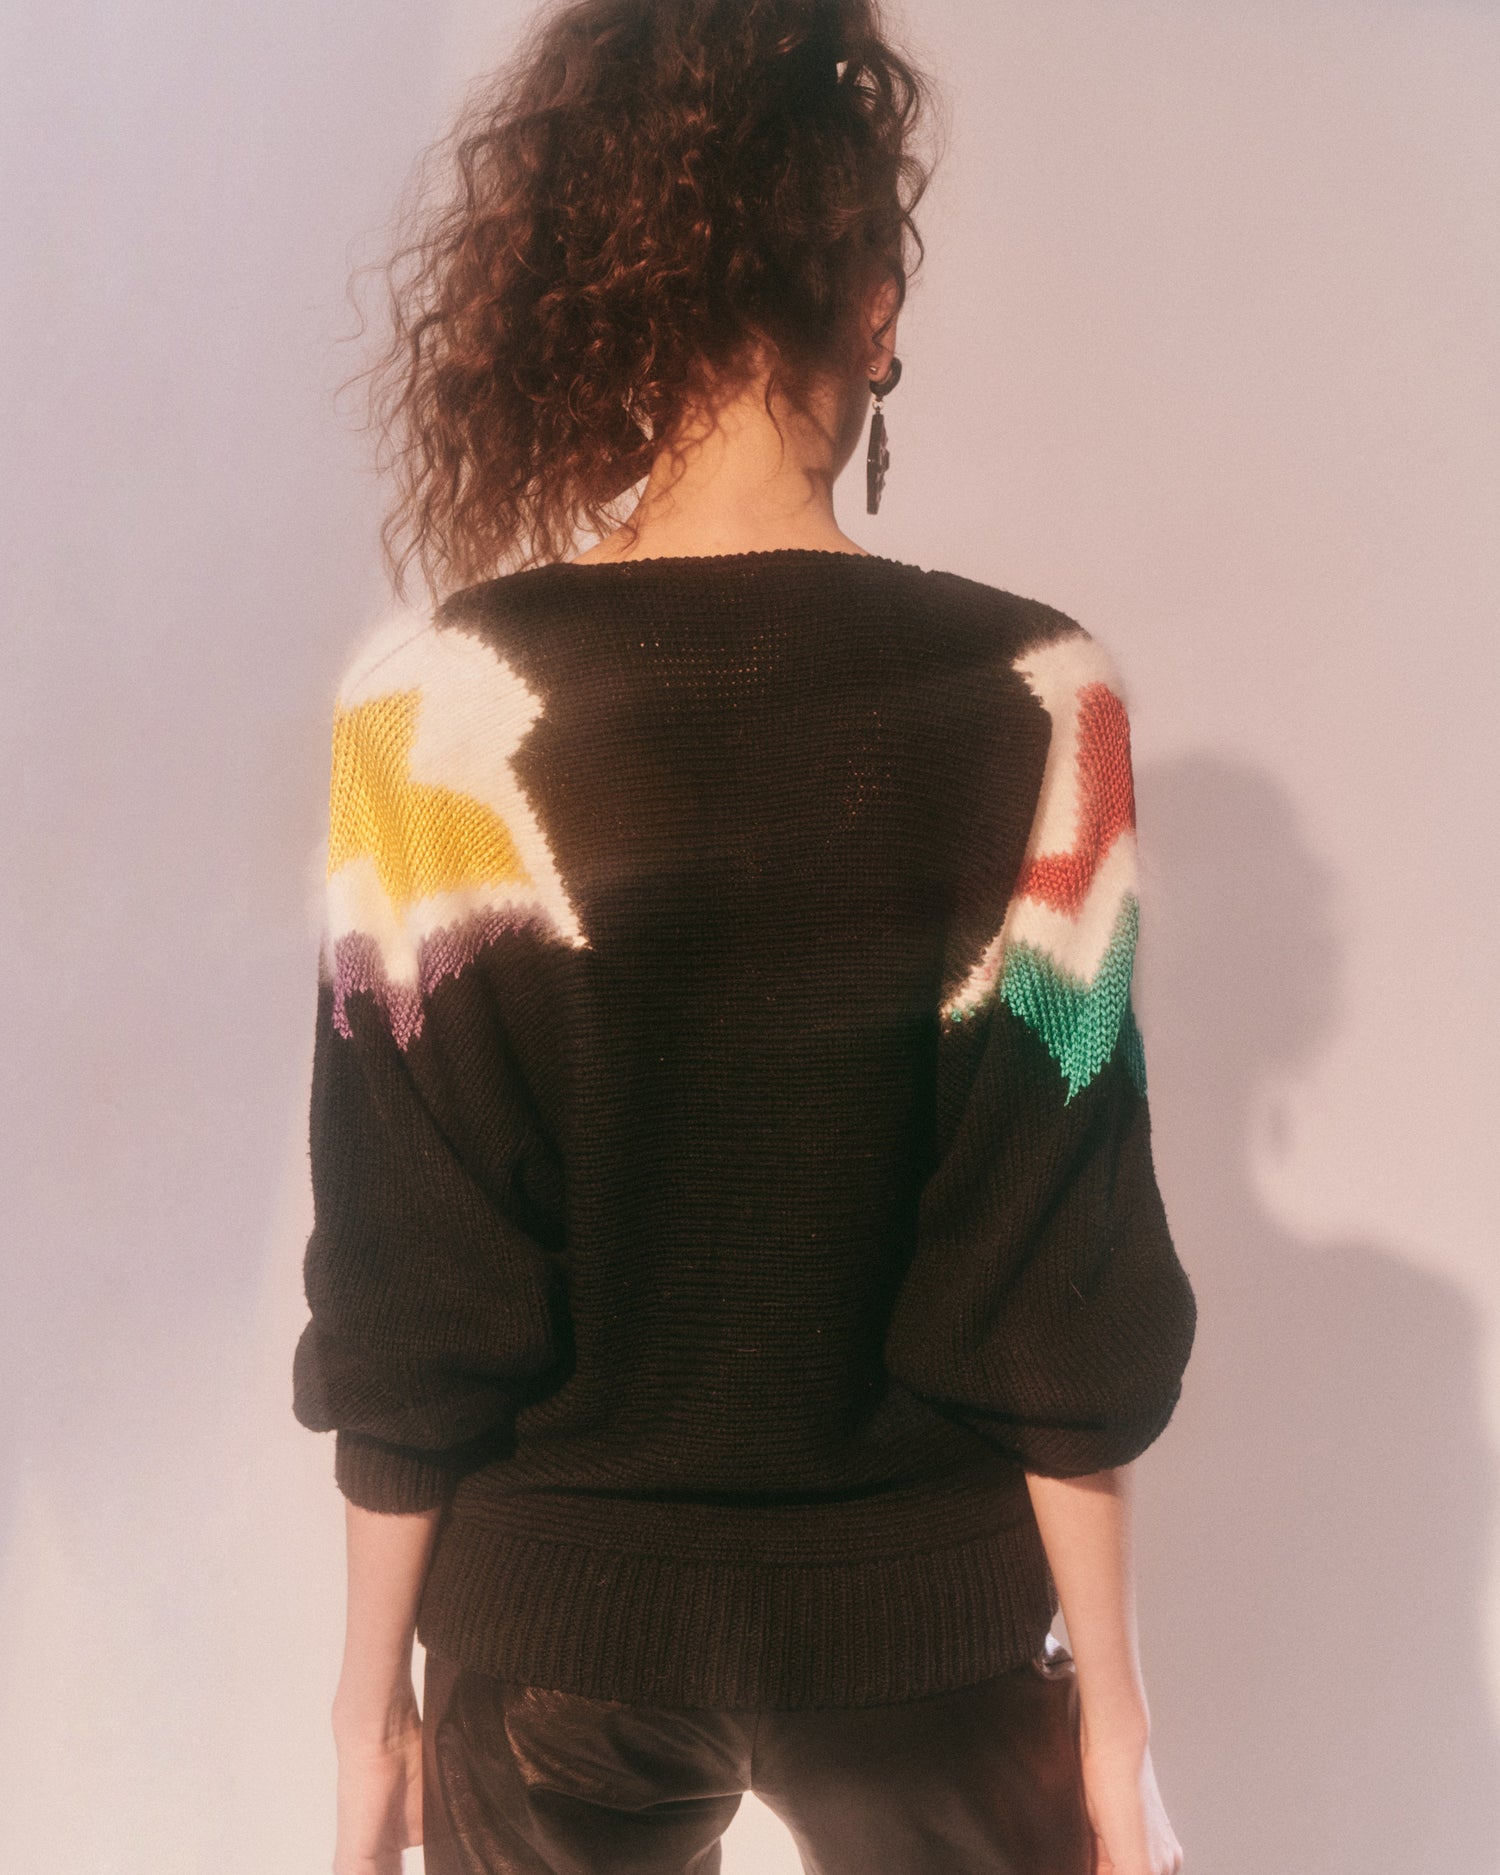 Super Freak // Intarsia sweater